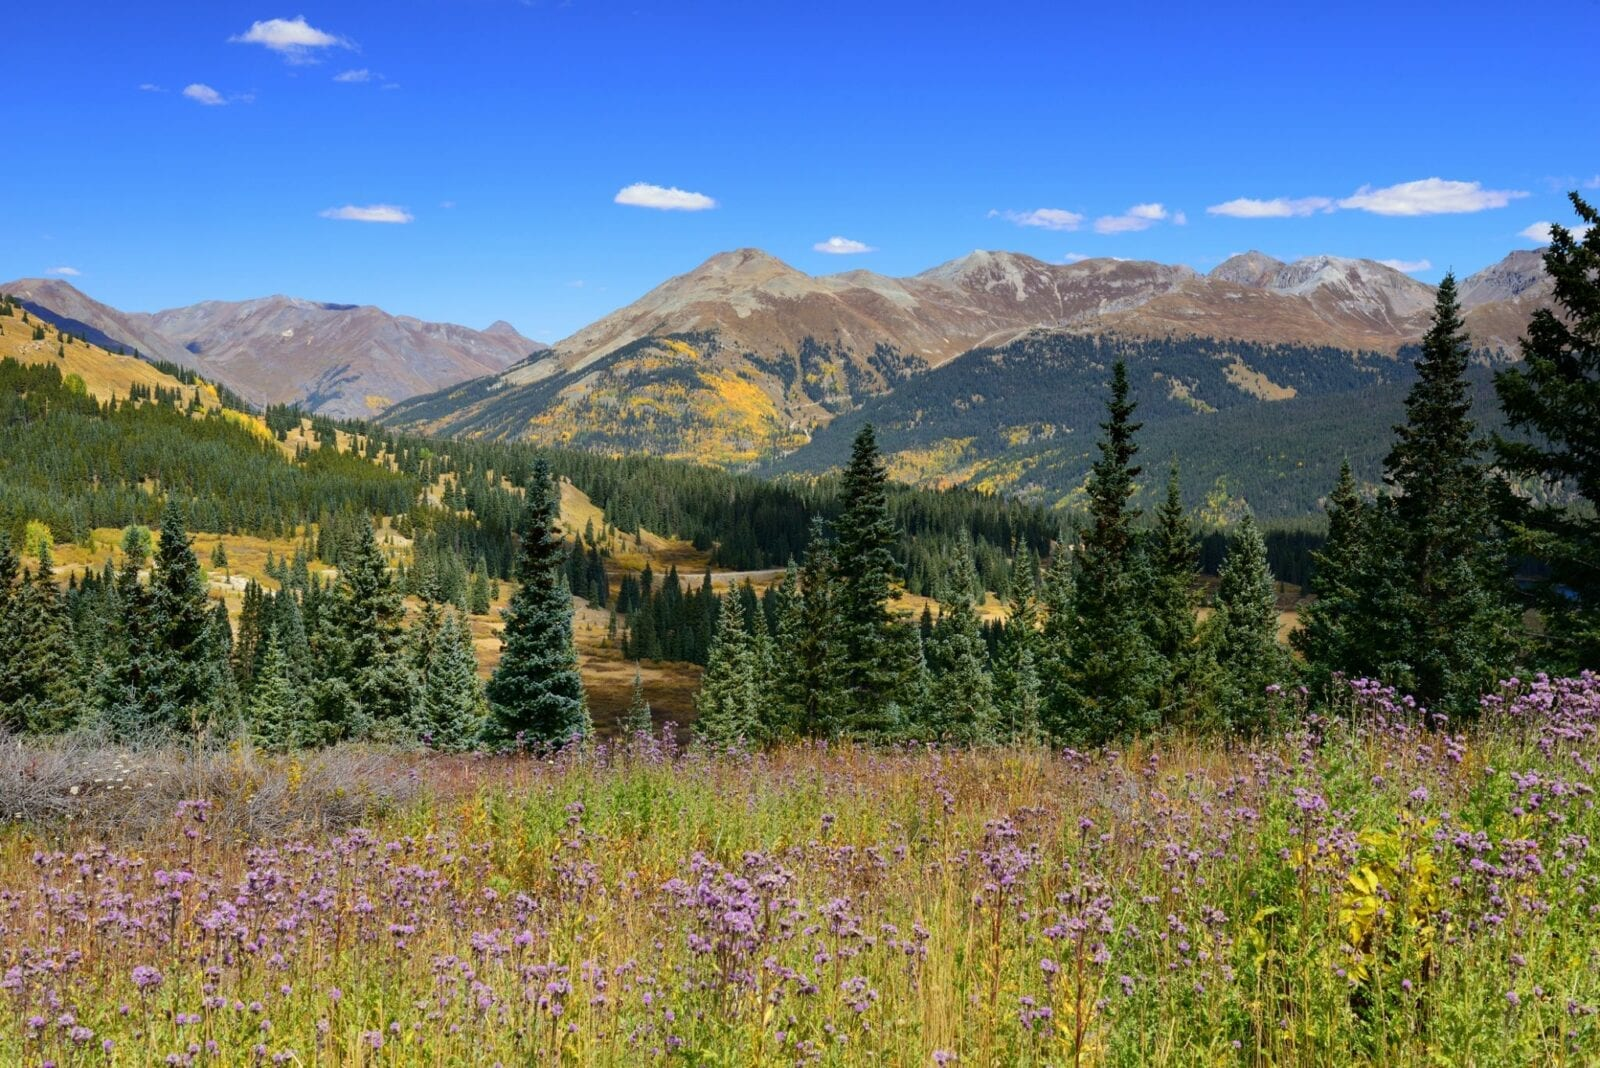 image of molas pass